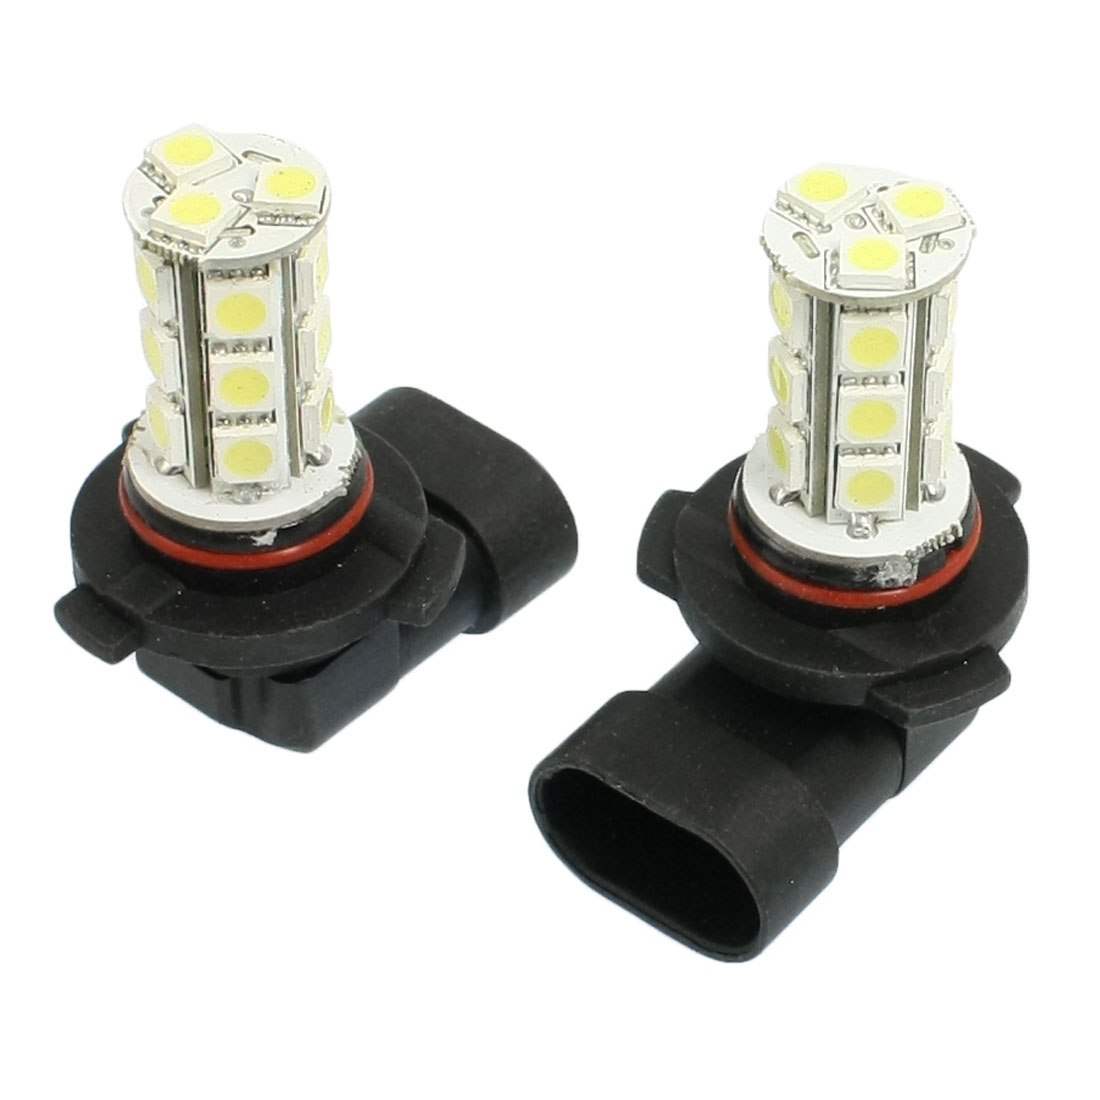 2 x White 9005 5050 SMD 18 LED Bulbs for Car Driving Fog Lights